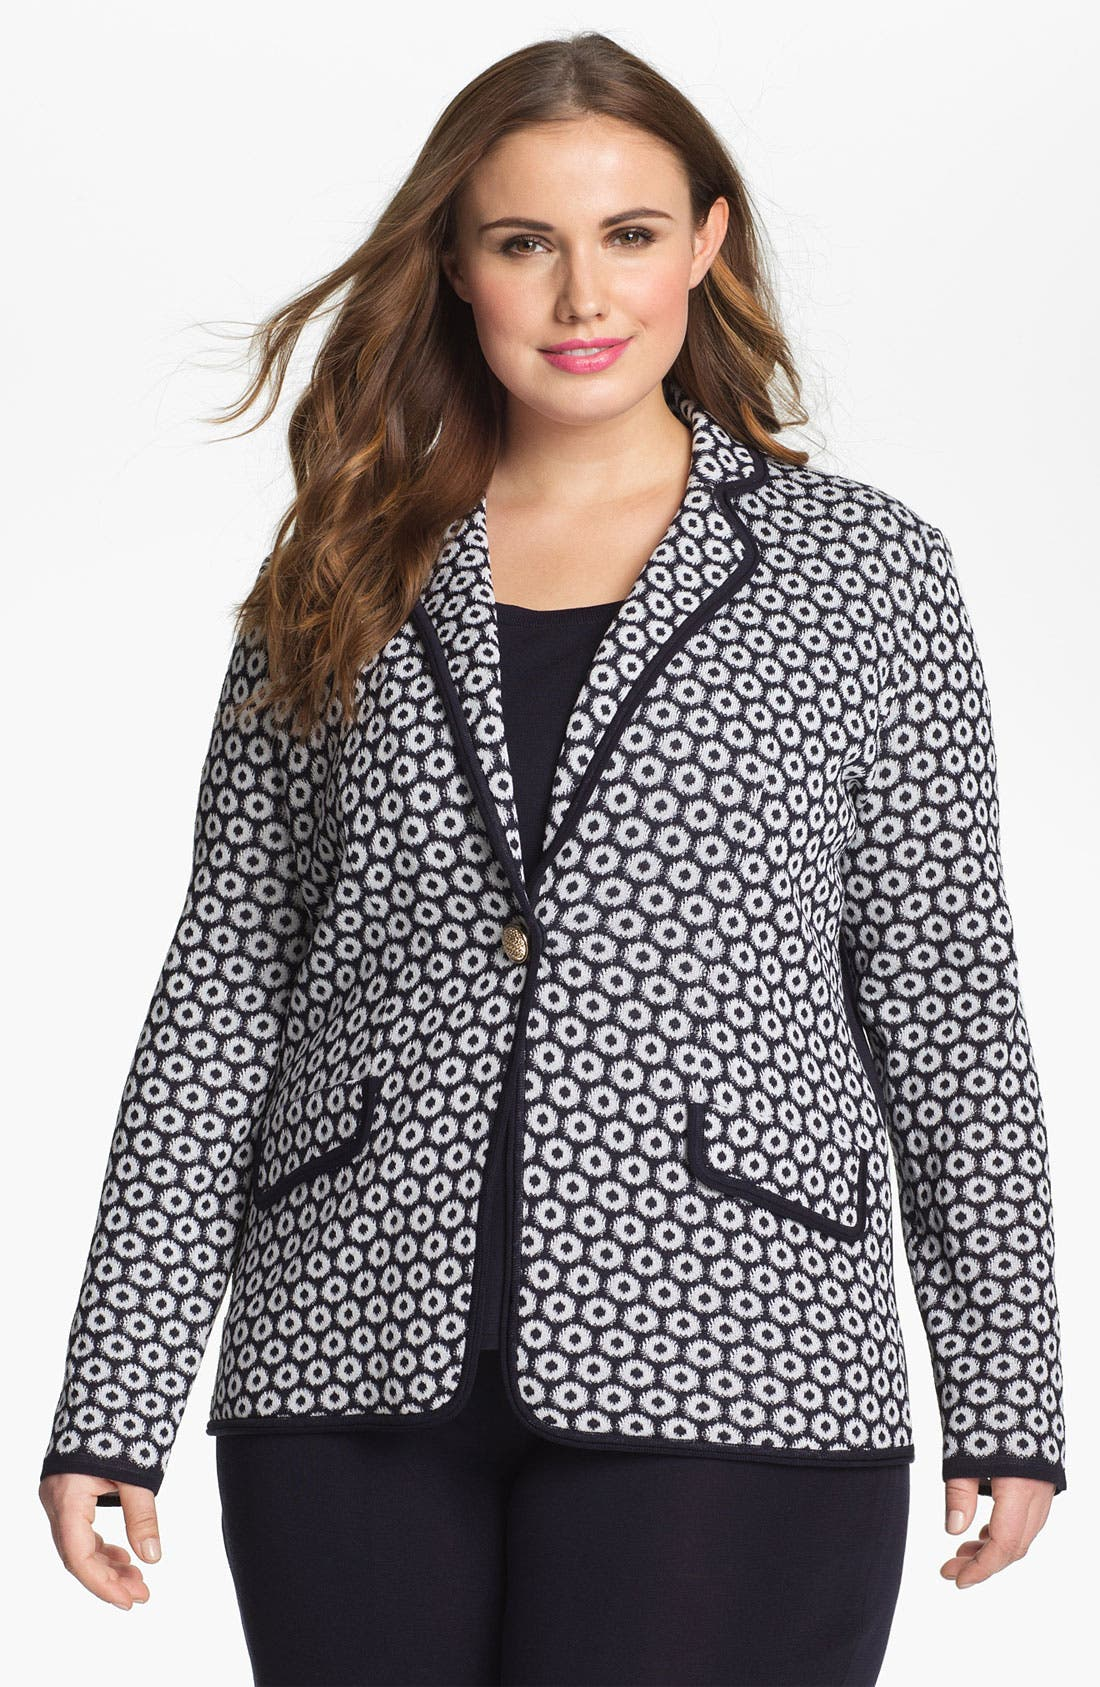 Main Image - Exclusively Misook 'Camille' Knit Jacquard Jacket (Plus Size)